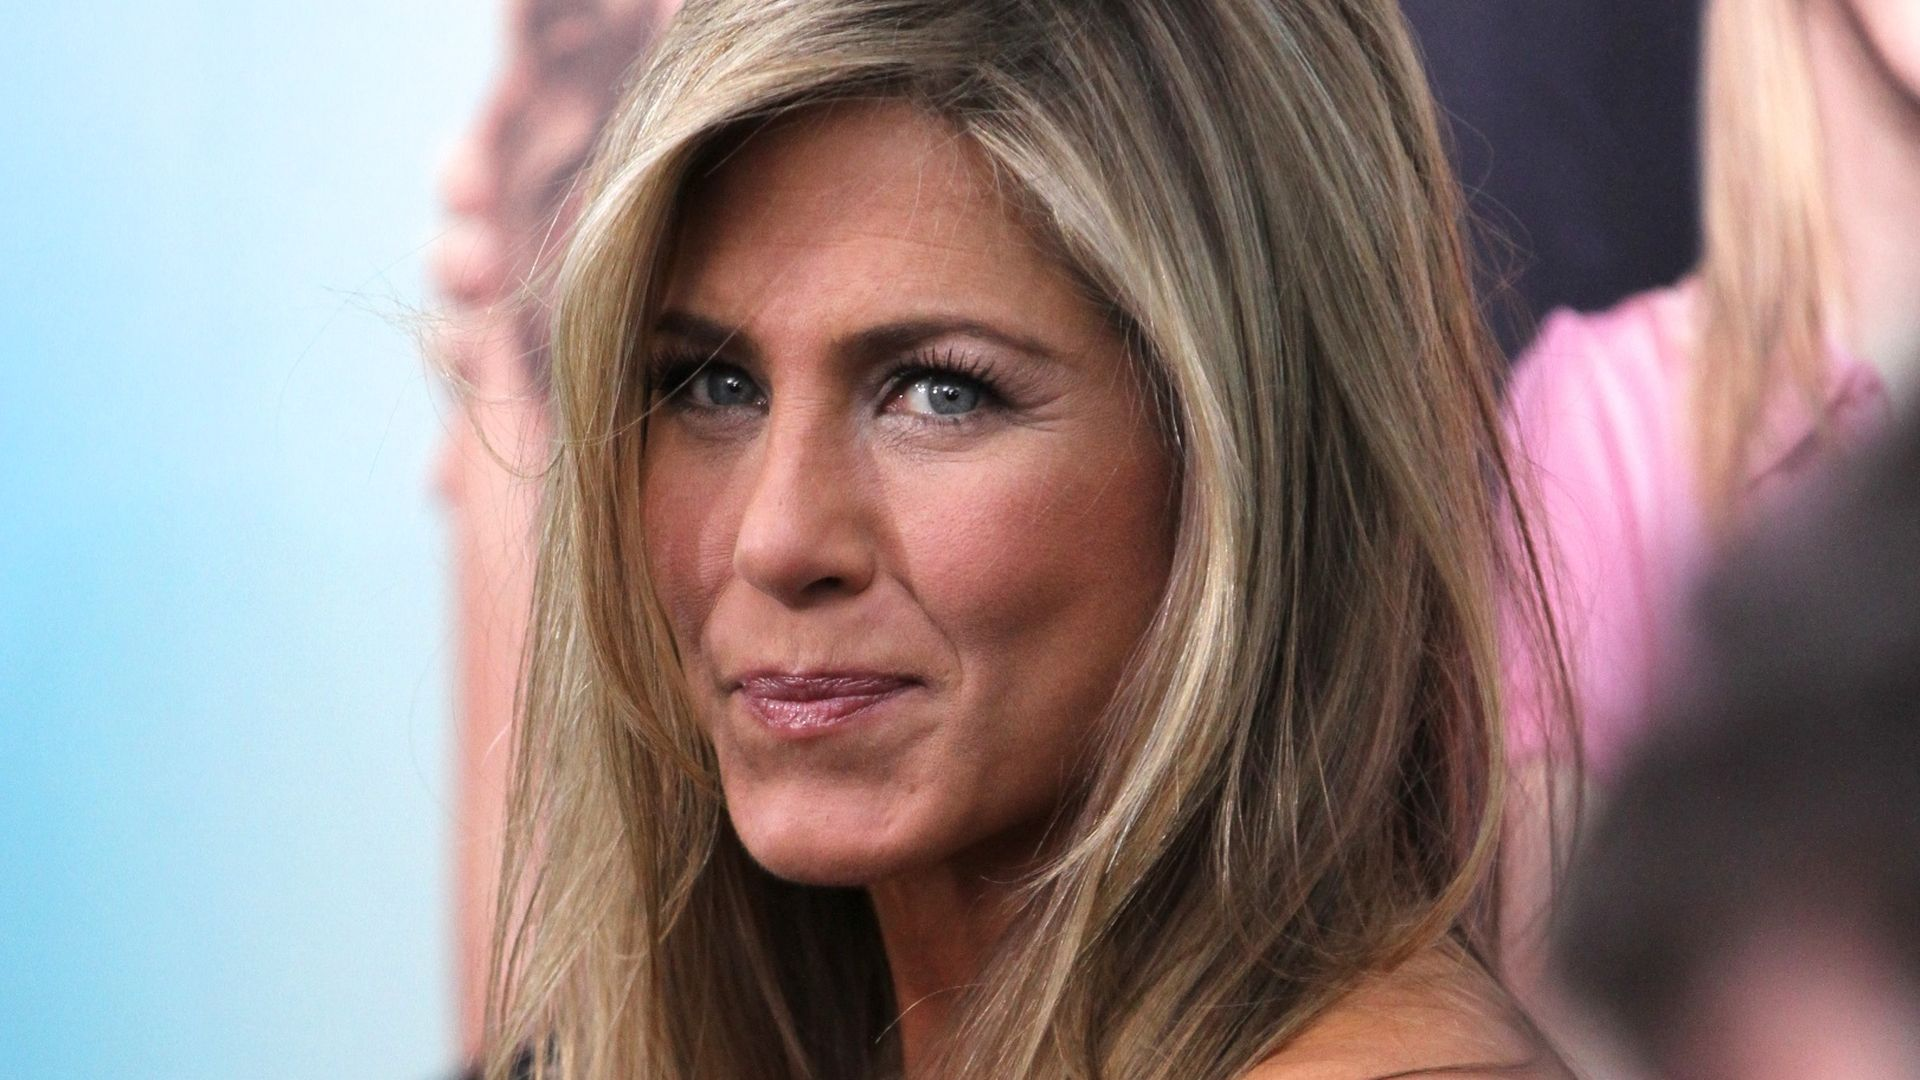 schock haare ab bei jennifer aniston. Black Bedroom Furniture Sets. Home Design Ideas